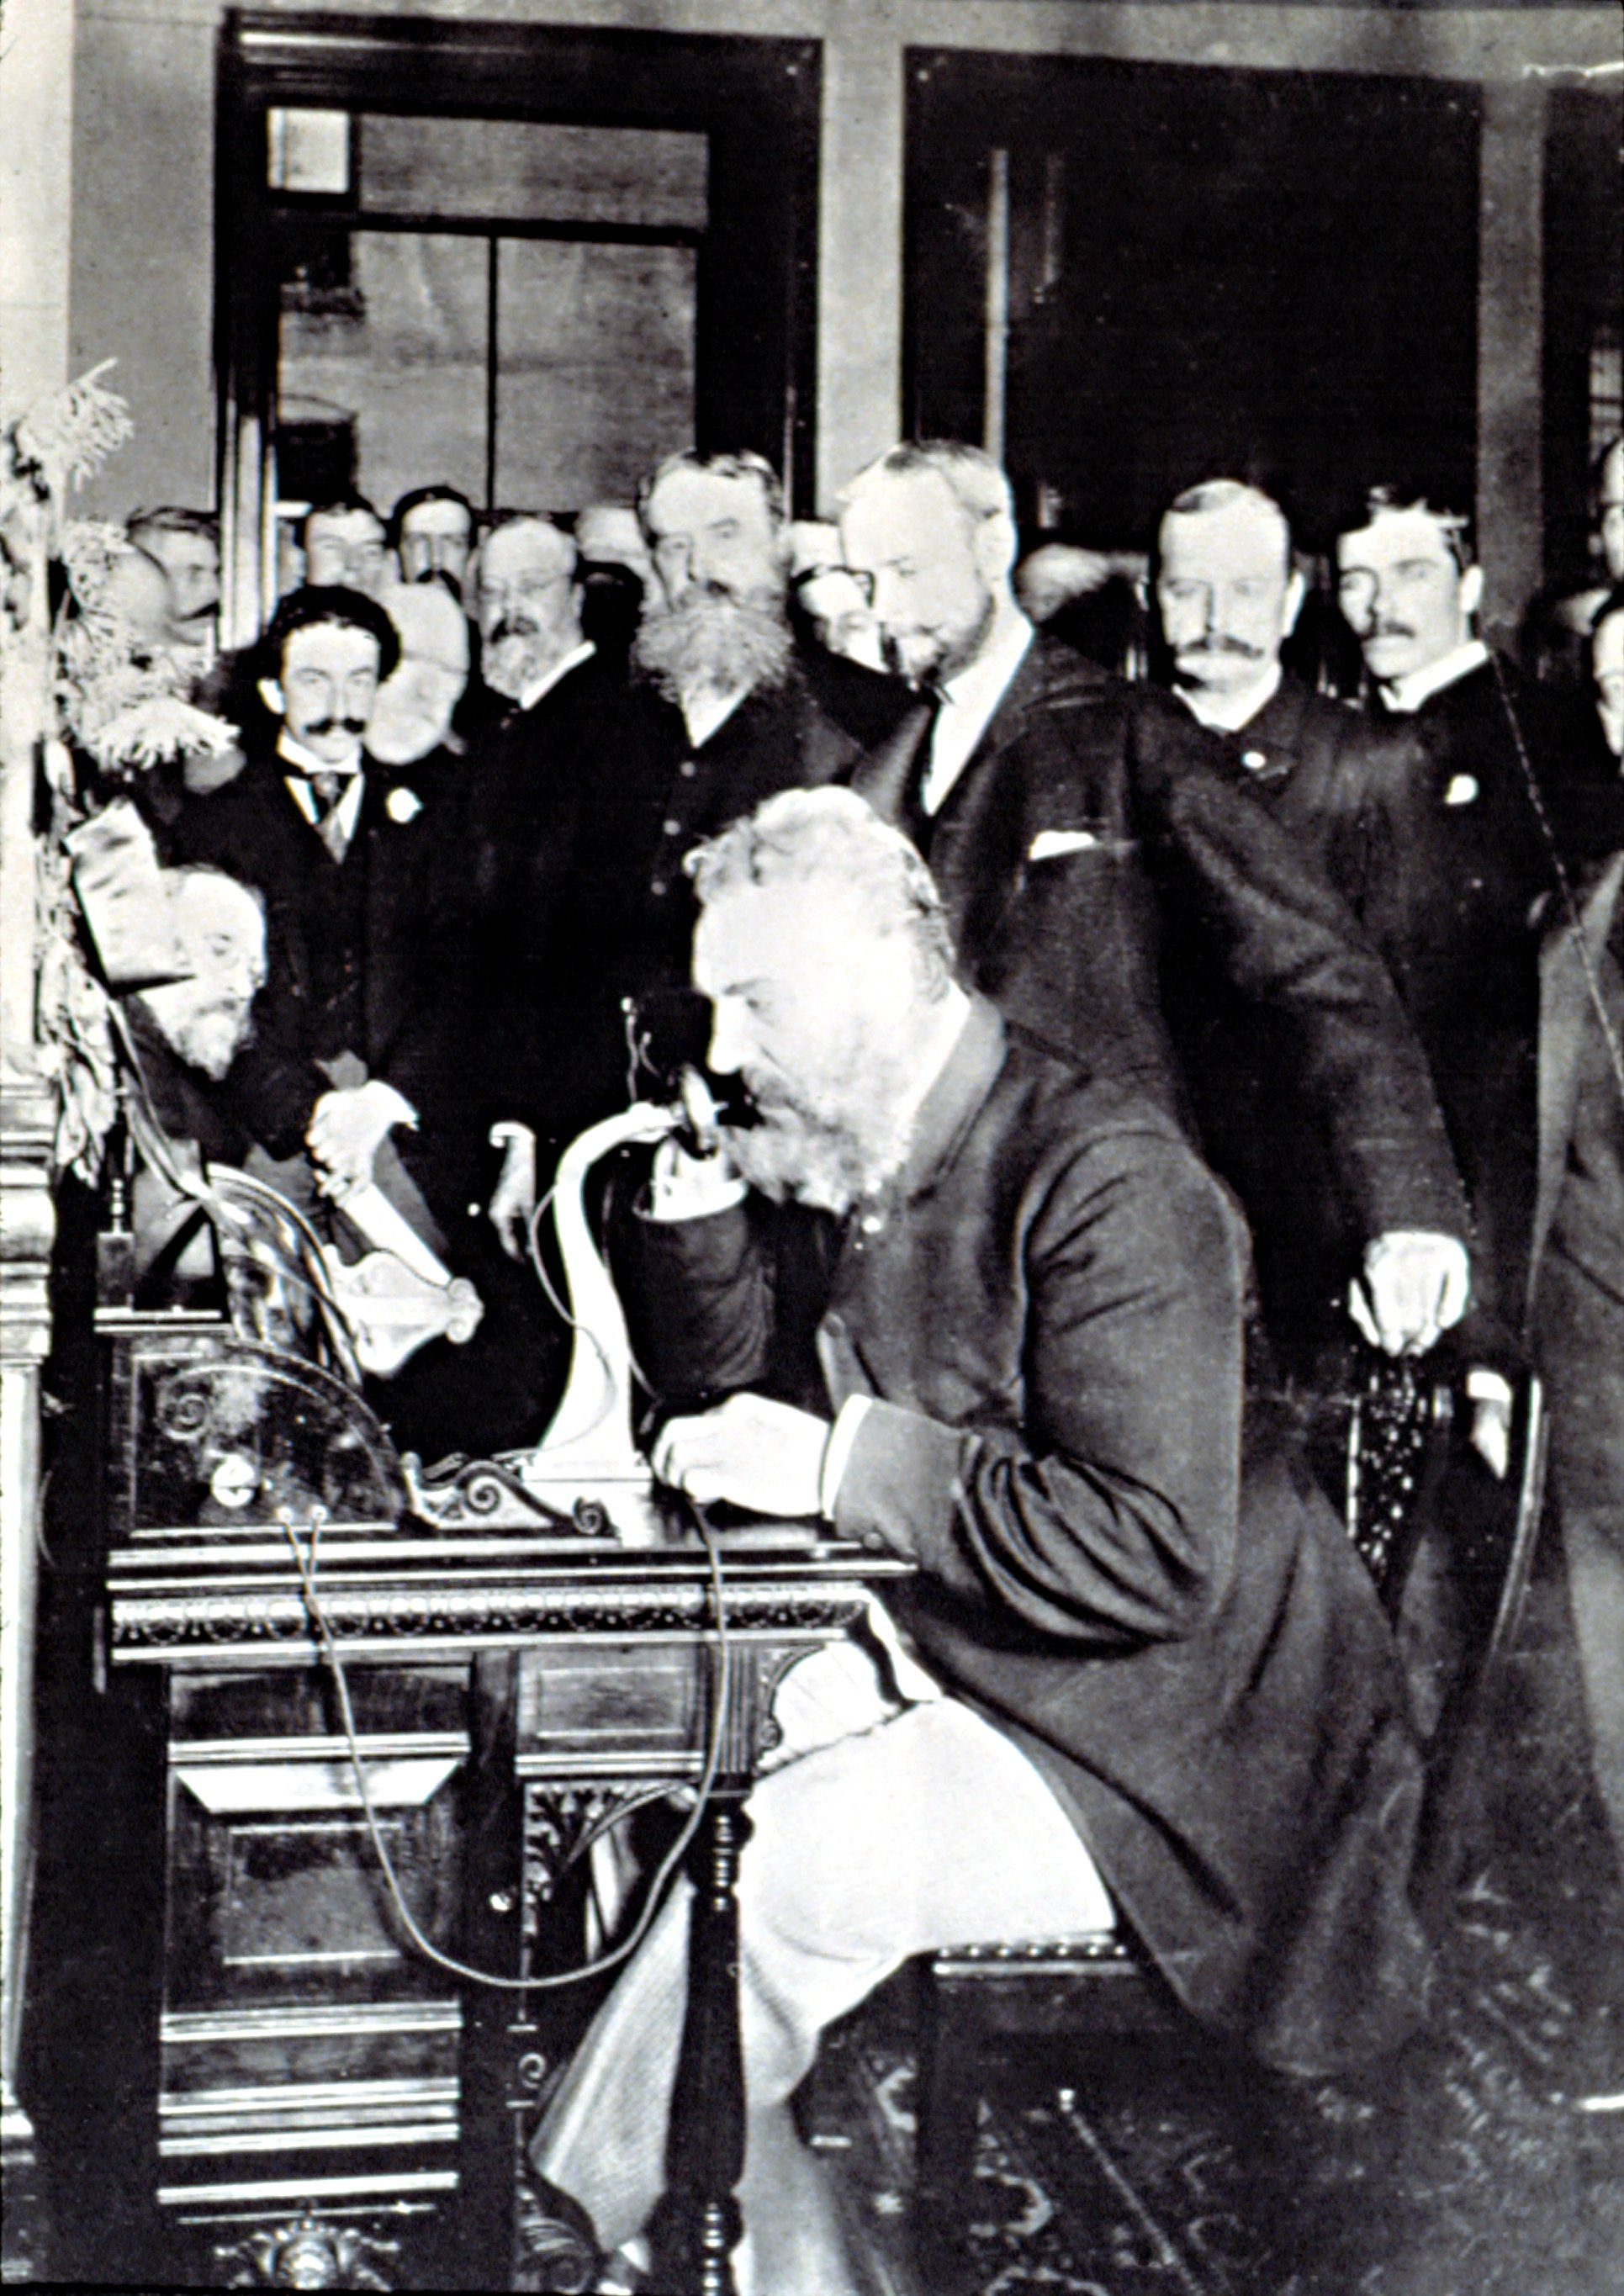 ALEXANDER GRAHAM BELL, demonstrating how to make a phone call in New York, March 12, 1876. Bell is talking to Thomas Watson & says, Mr. Watson -- Come here -- I want to see you.